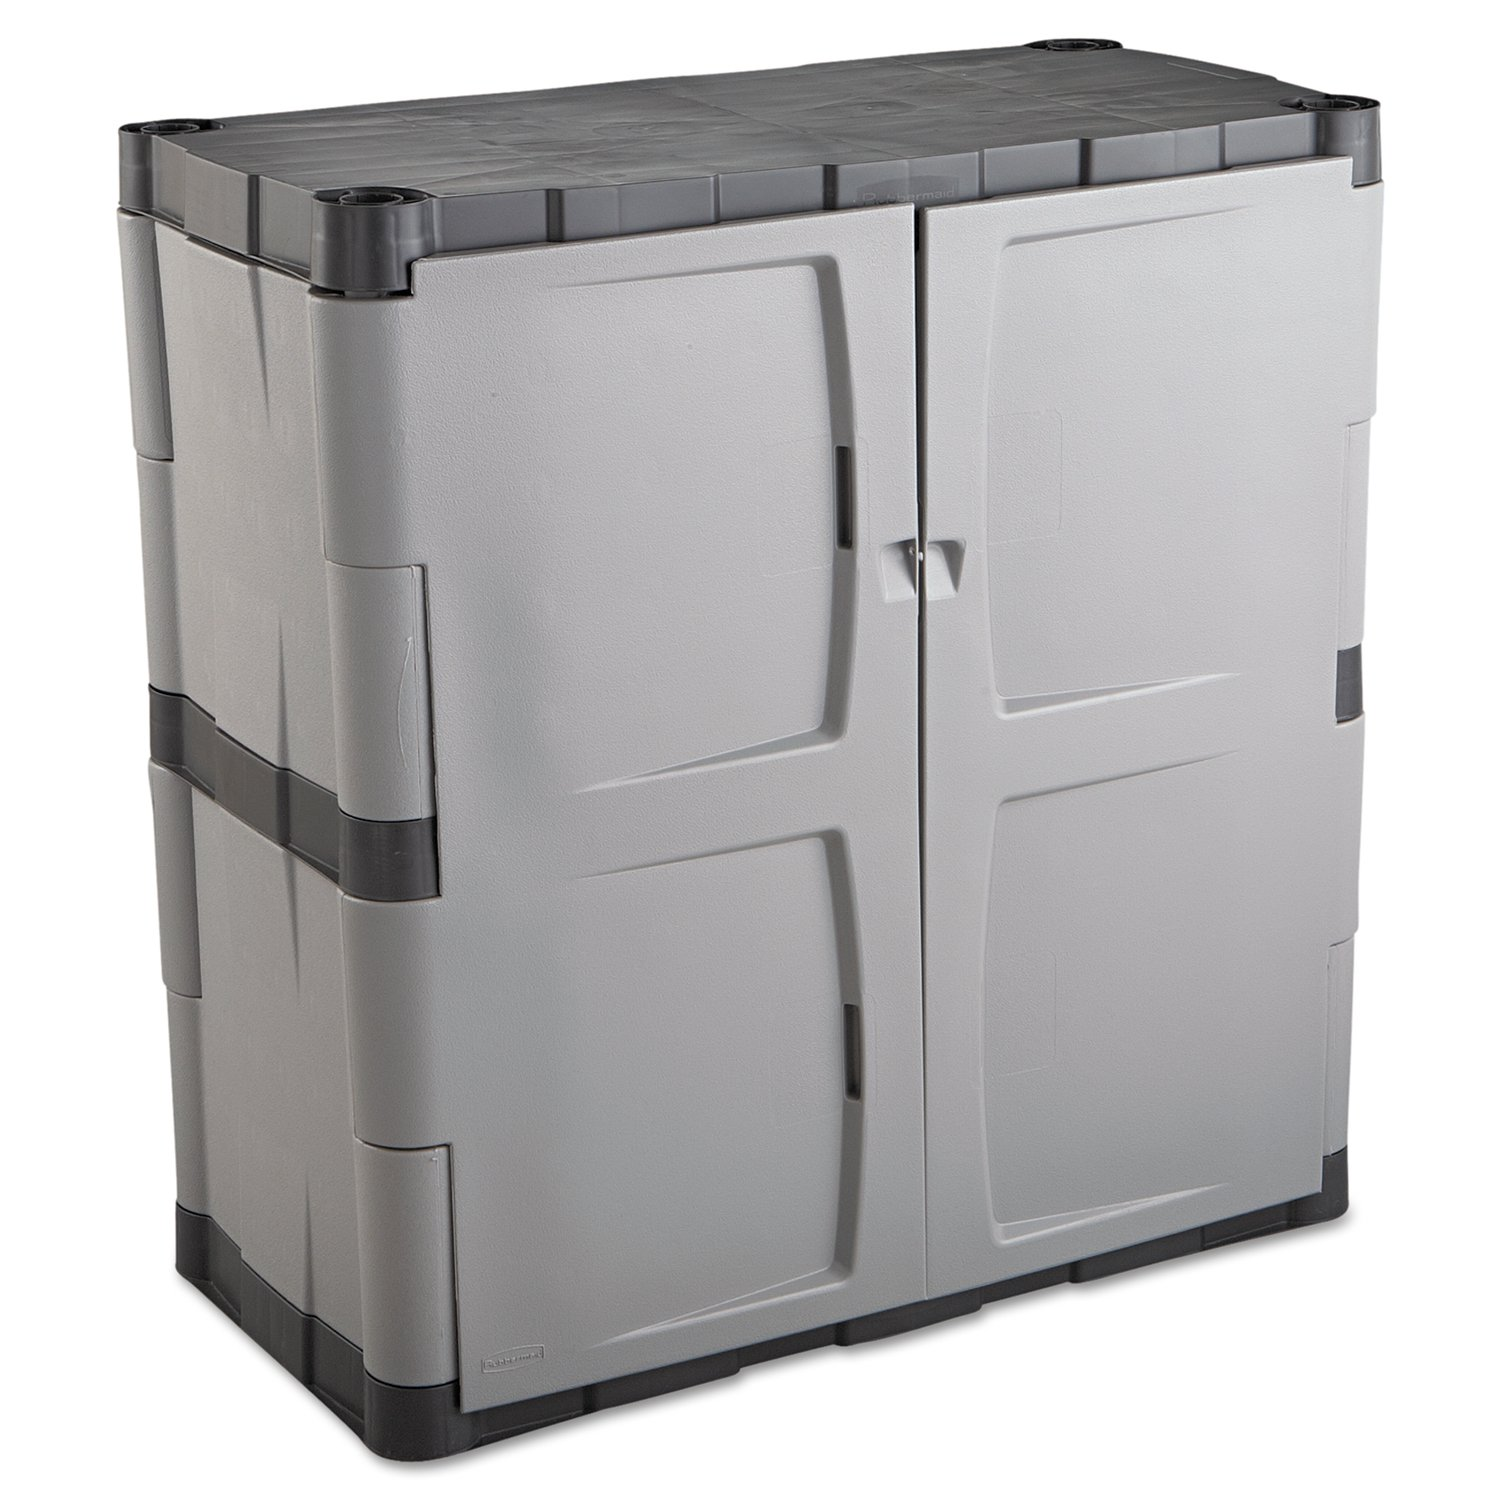 Resin Utility Cabinet Amazoncom Rubbermaid Commercial 7085 Double Door Storage Cabinet